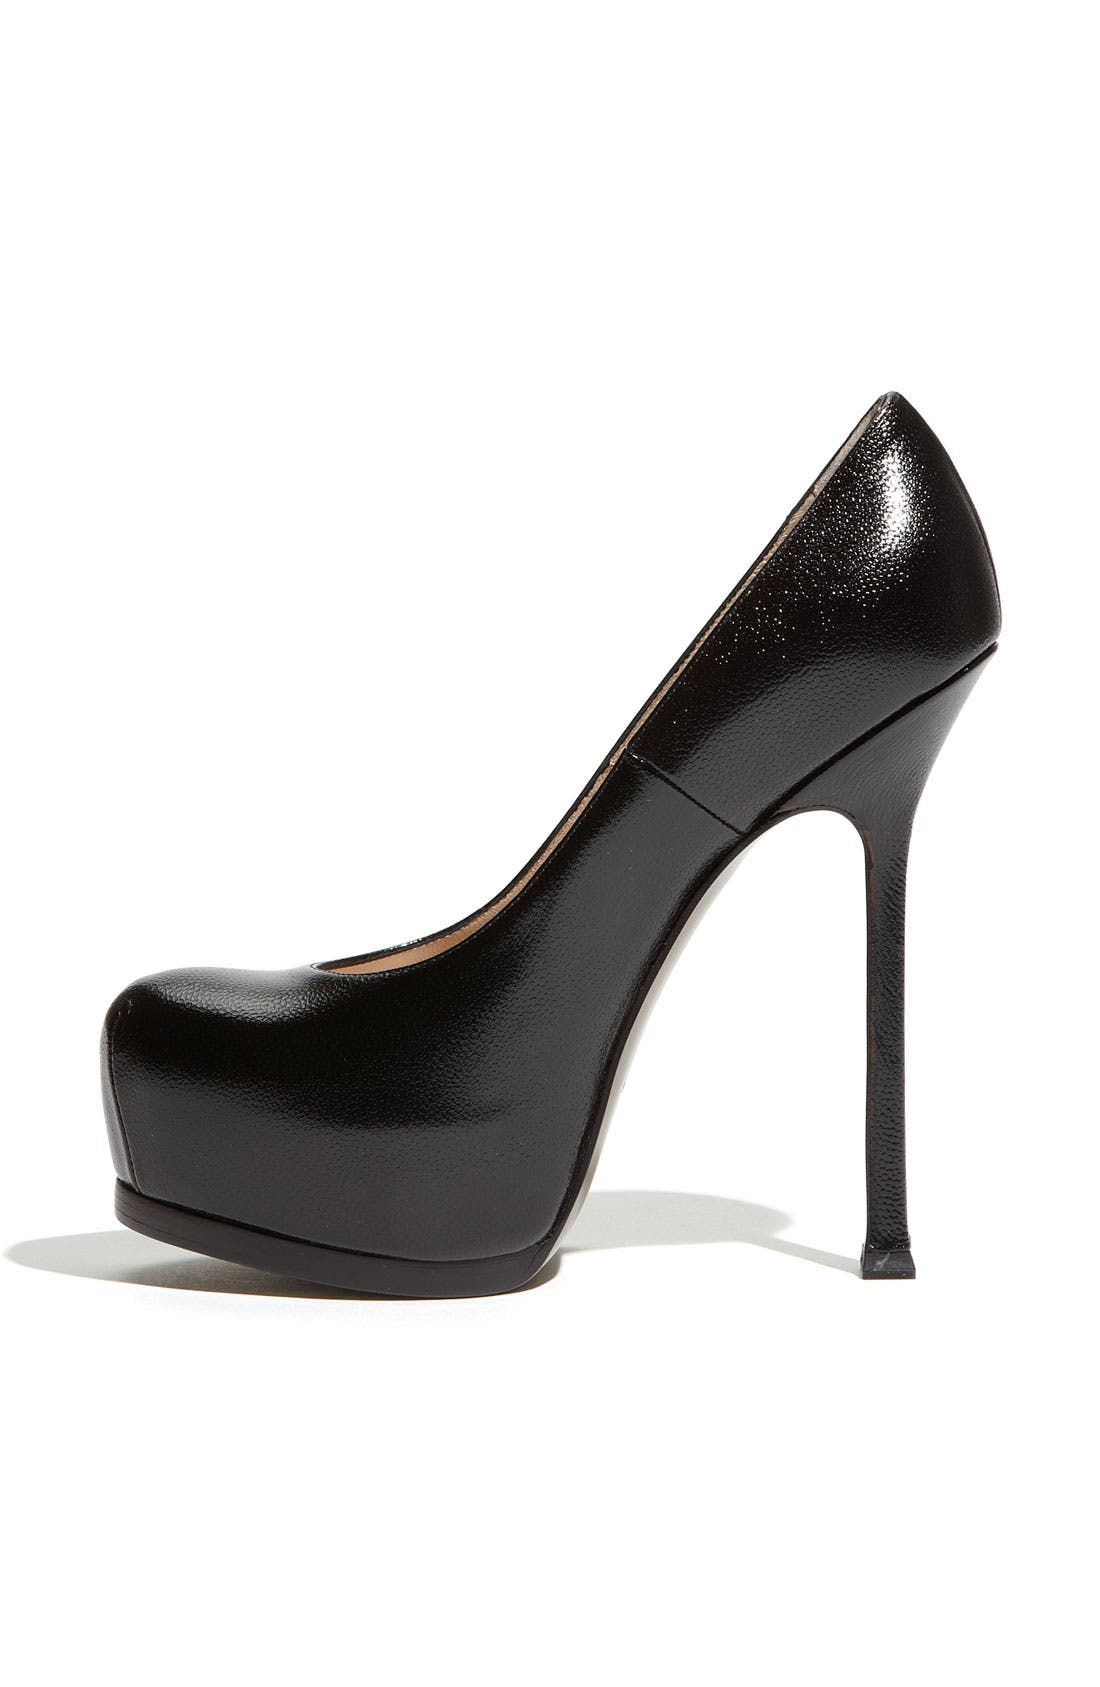 Alternate Image 2  - Saint Laurent 'Tribute Two' Leather Platform Pump